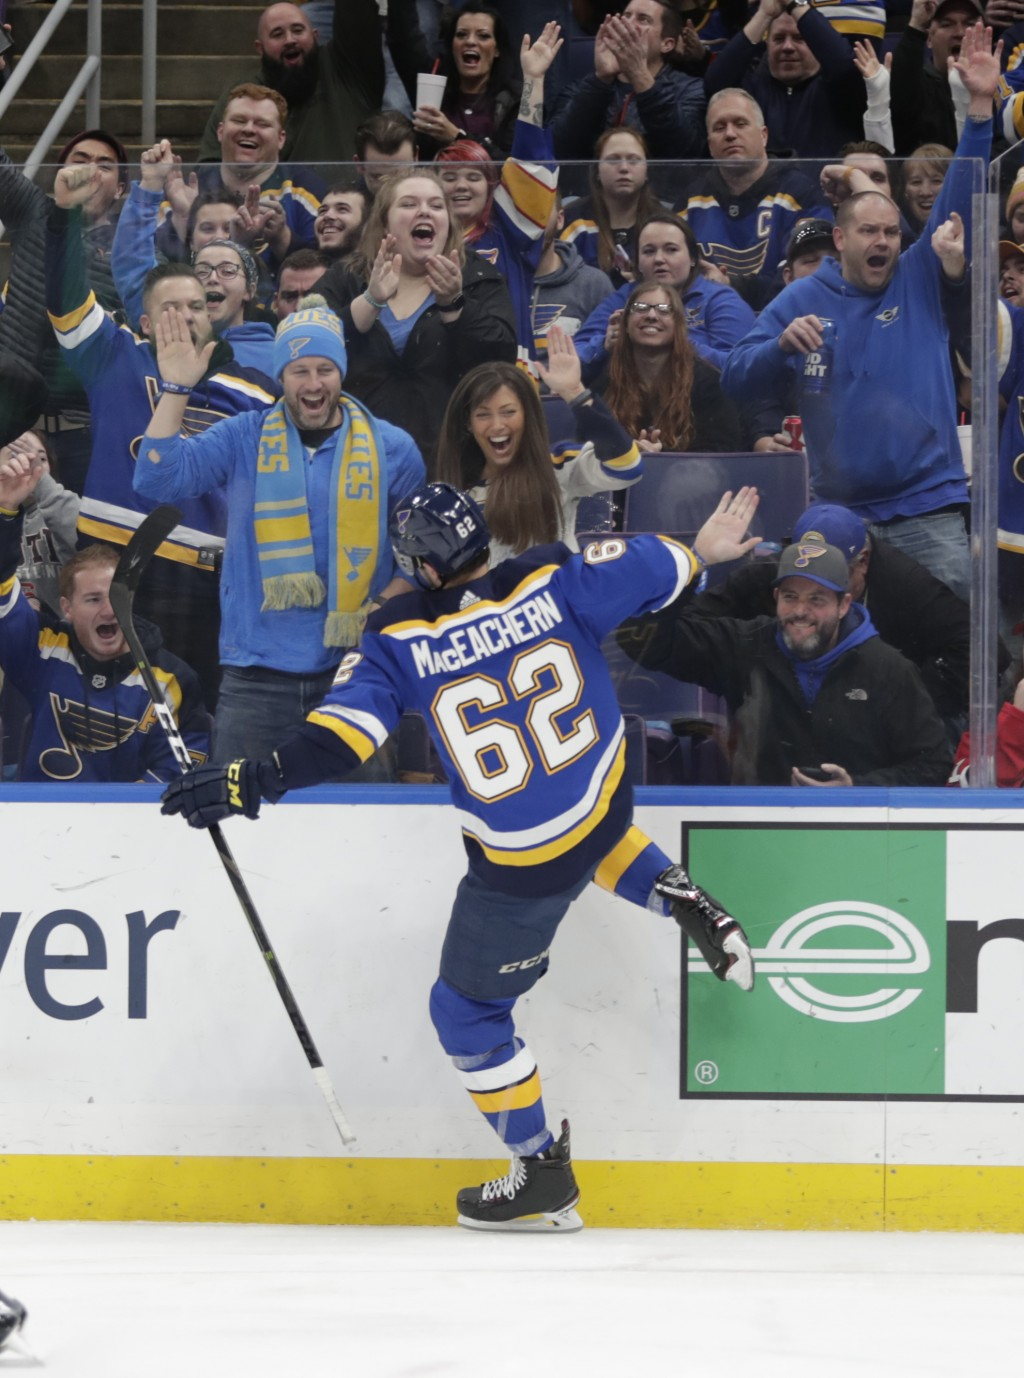 St. Louis Blues' Mackenzie MacEachern (62) celebrates scoring a goal in the second period of an NHL hockey game against the New Jersey Devils, Tuesday...